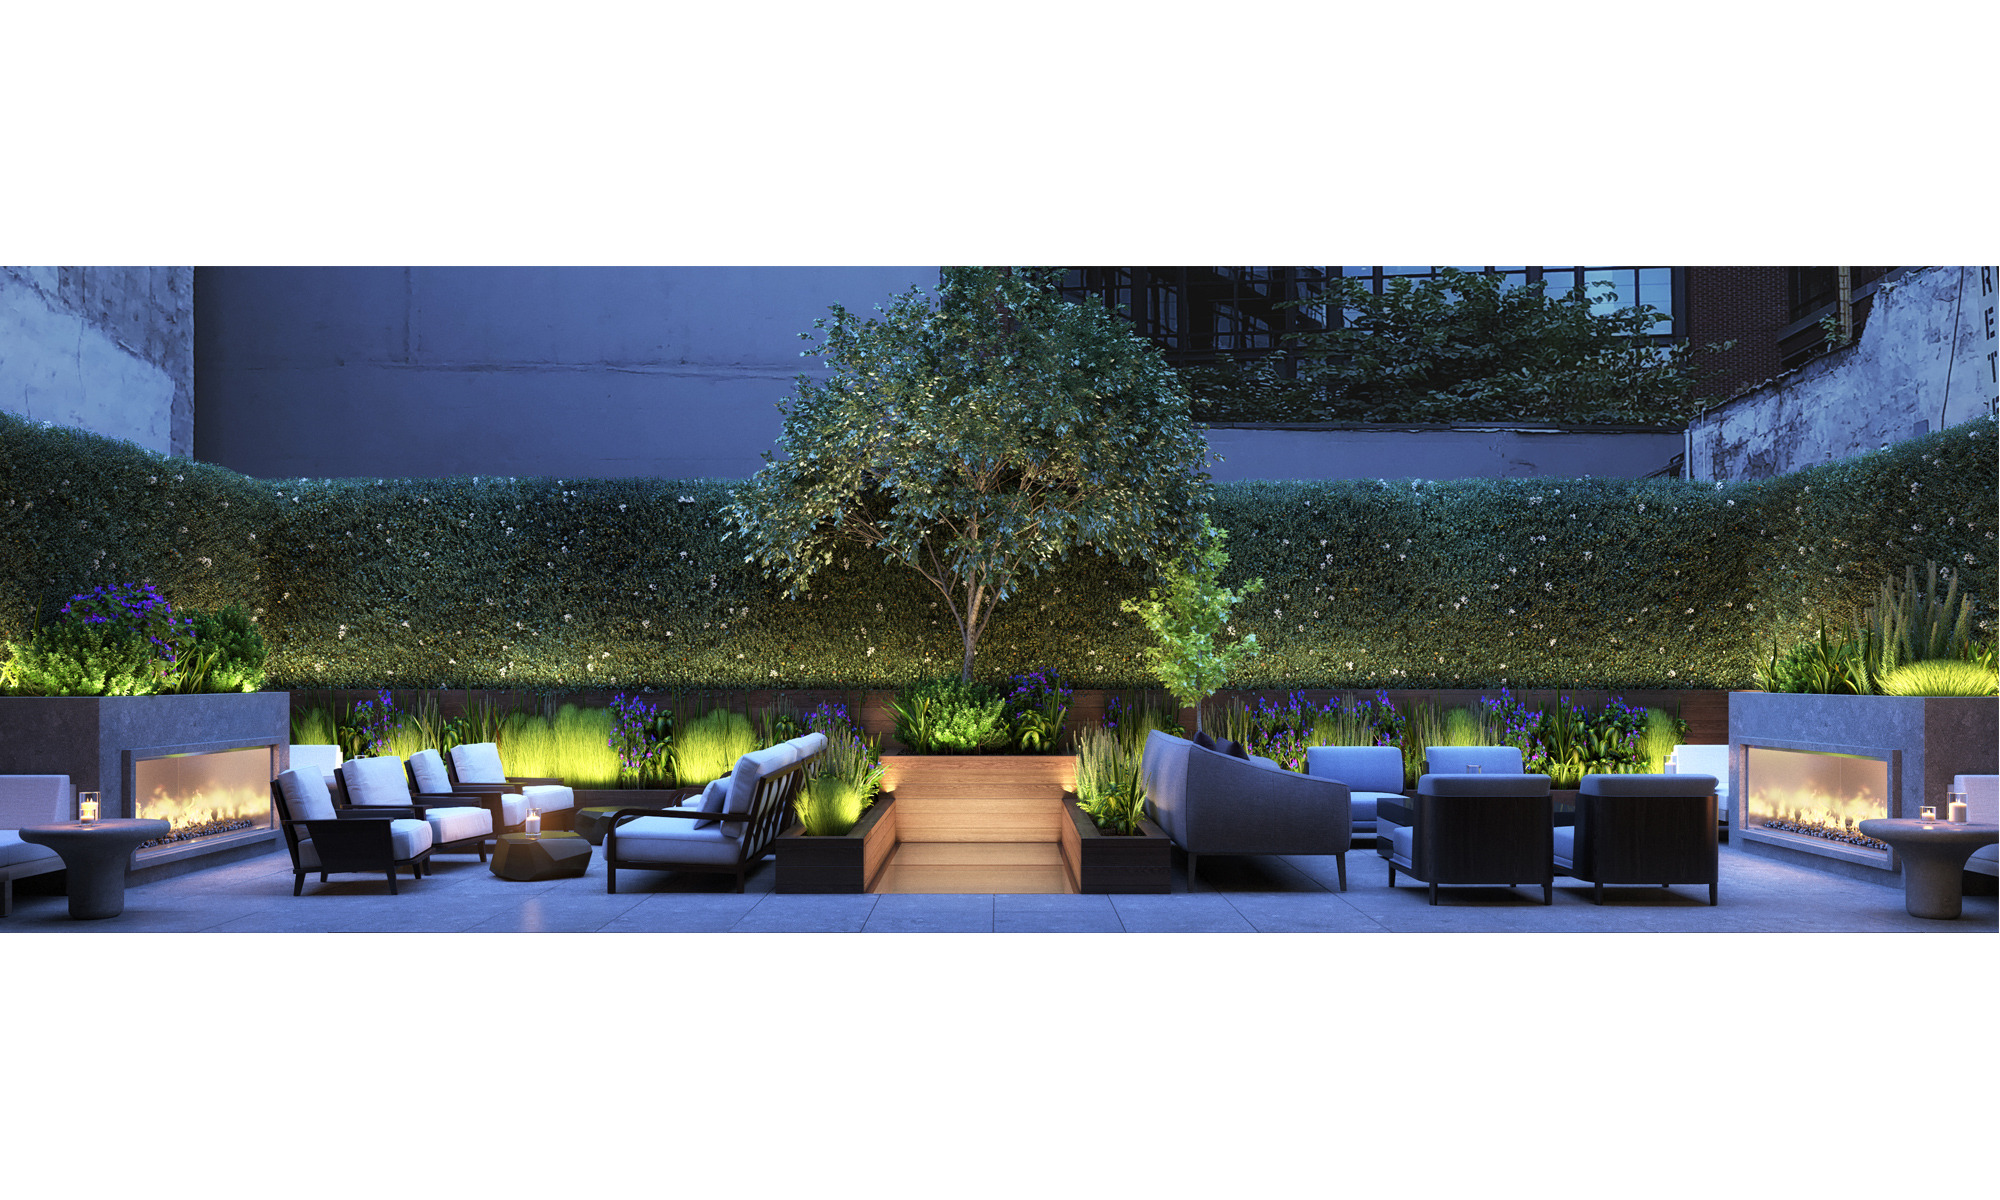 Artist's impression of the 401 West bar and restaurant outdoor terrace.